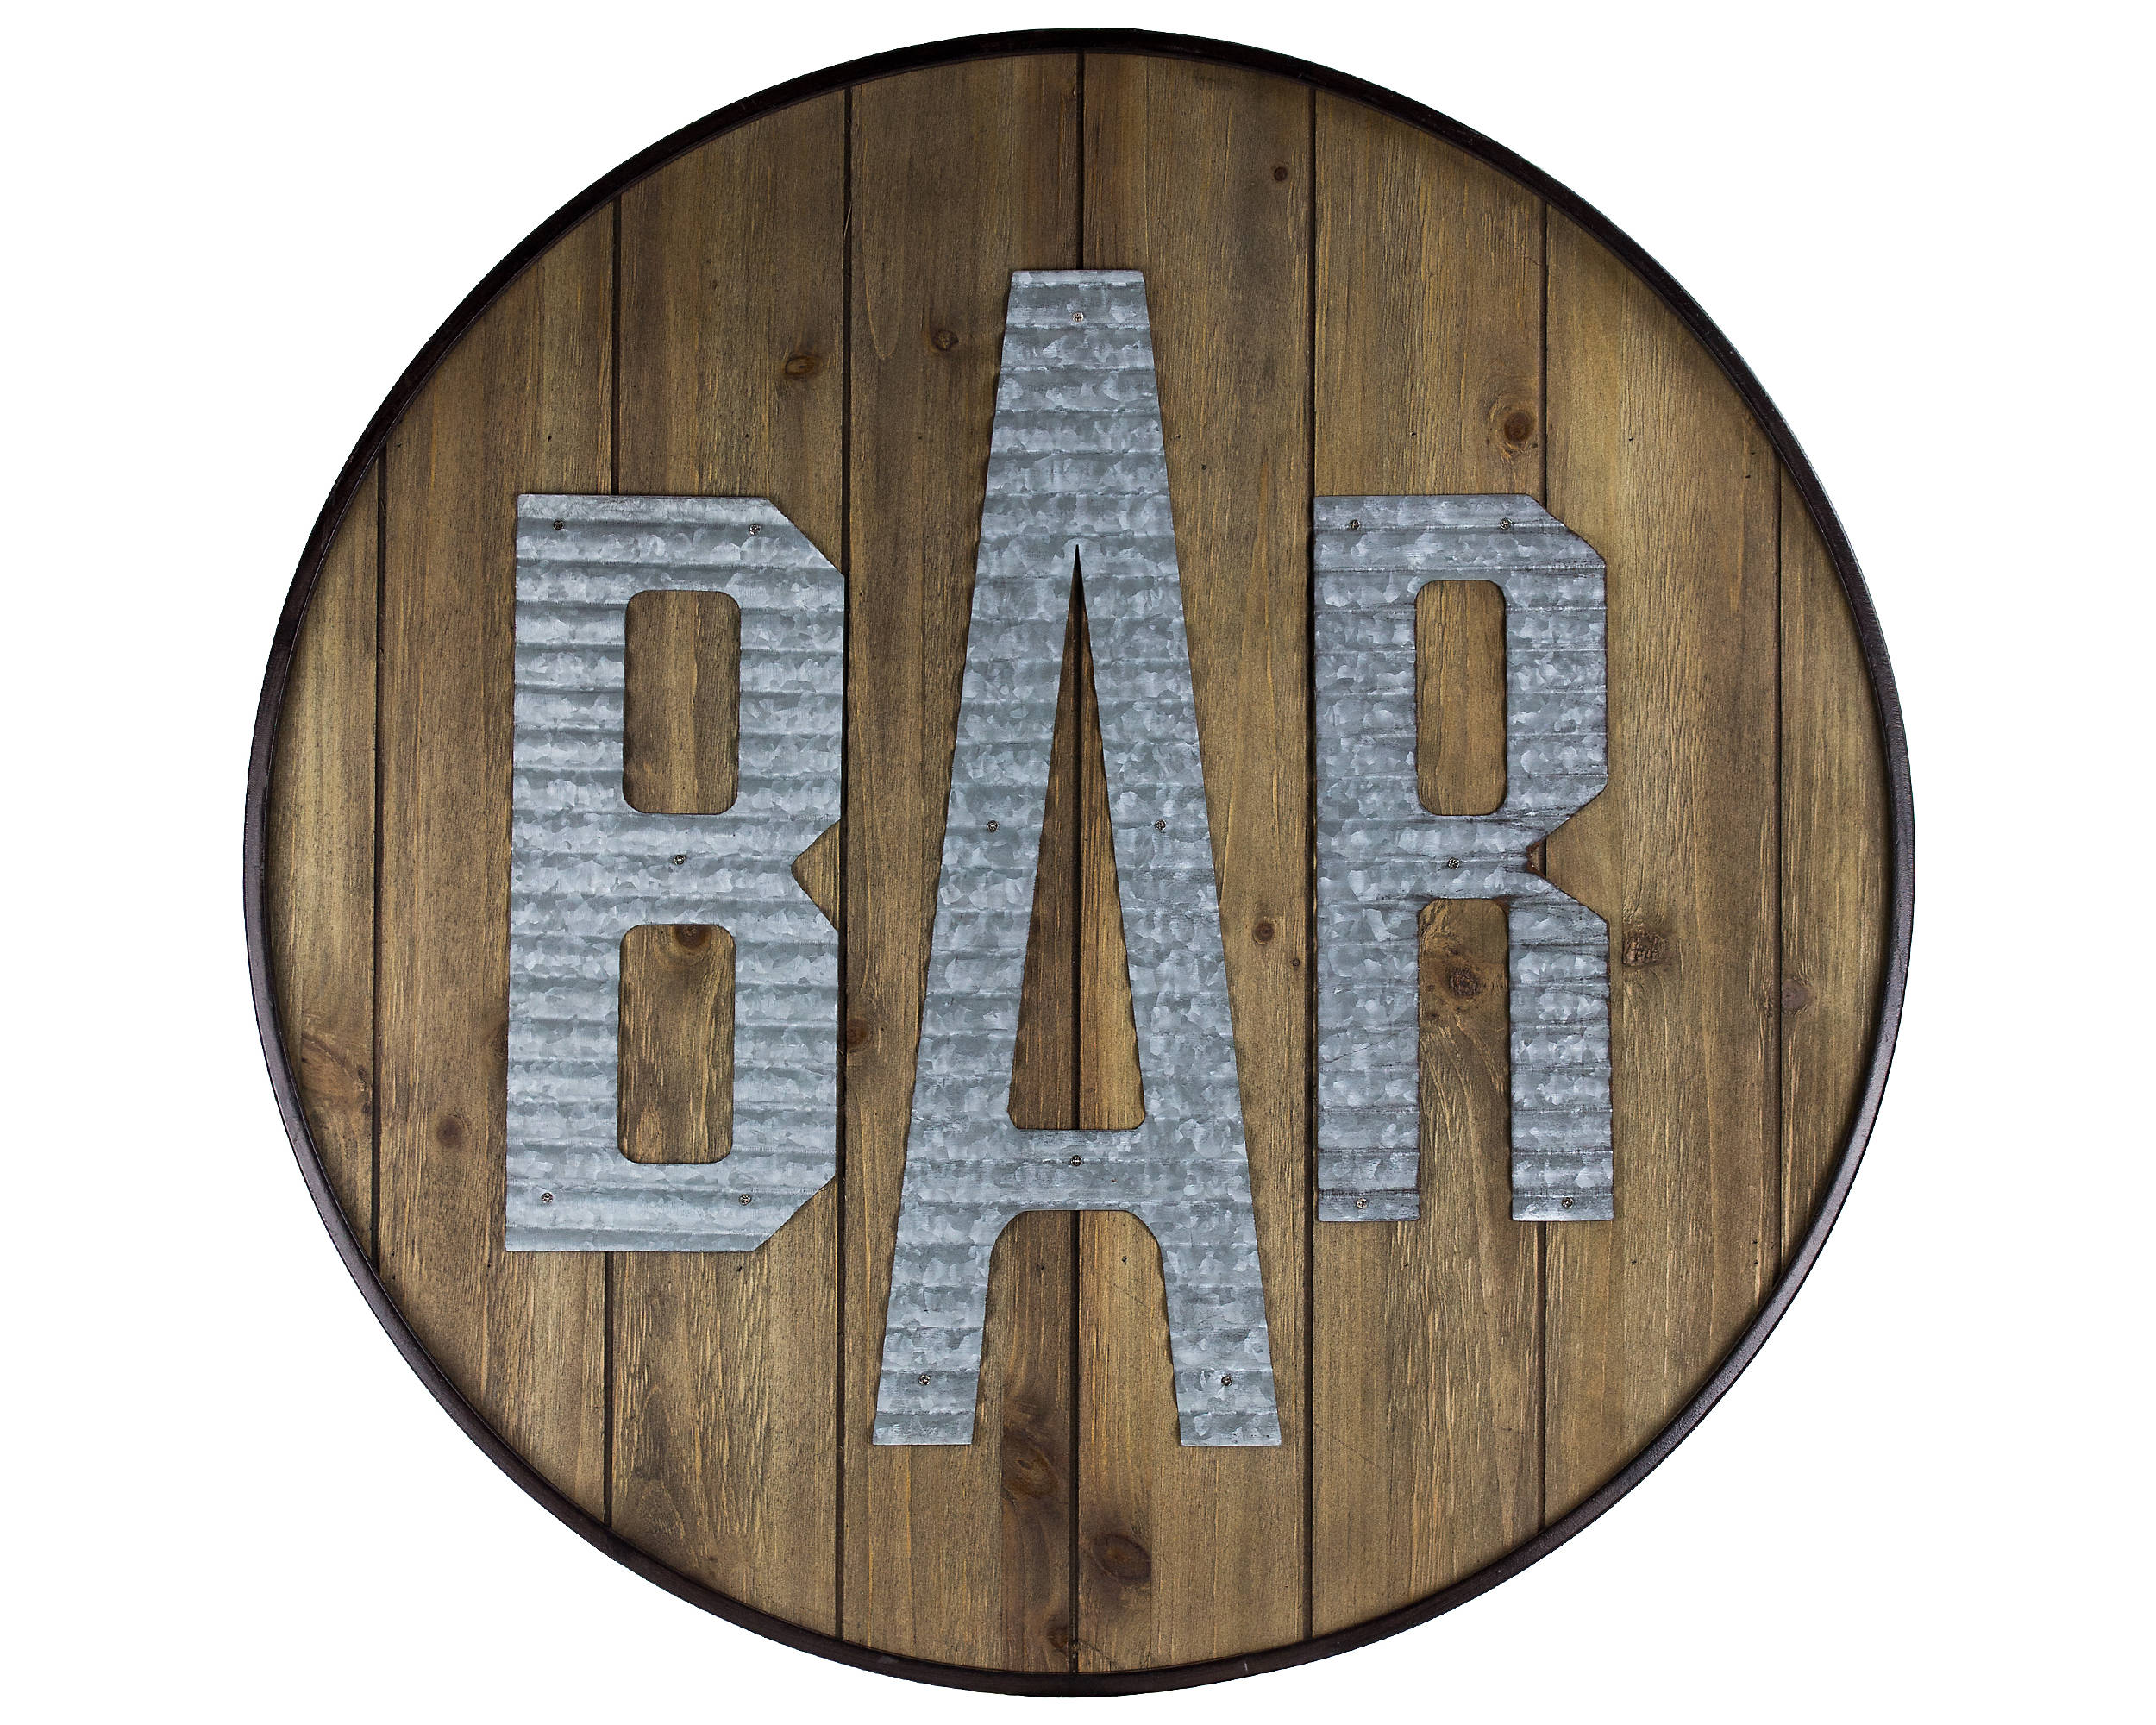 Shop Round Rustic Wood and Galvanized Metal Bar Sign from Kirkland's on Openhaus